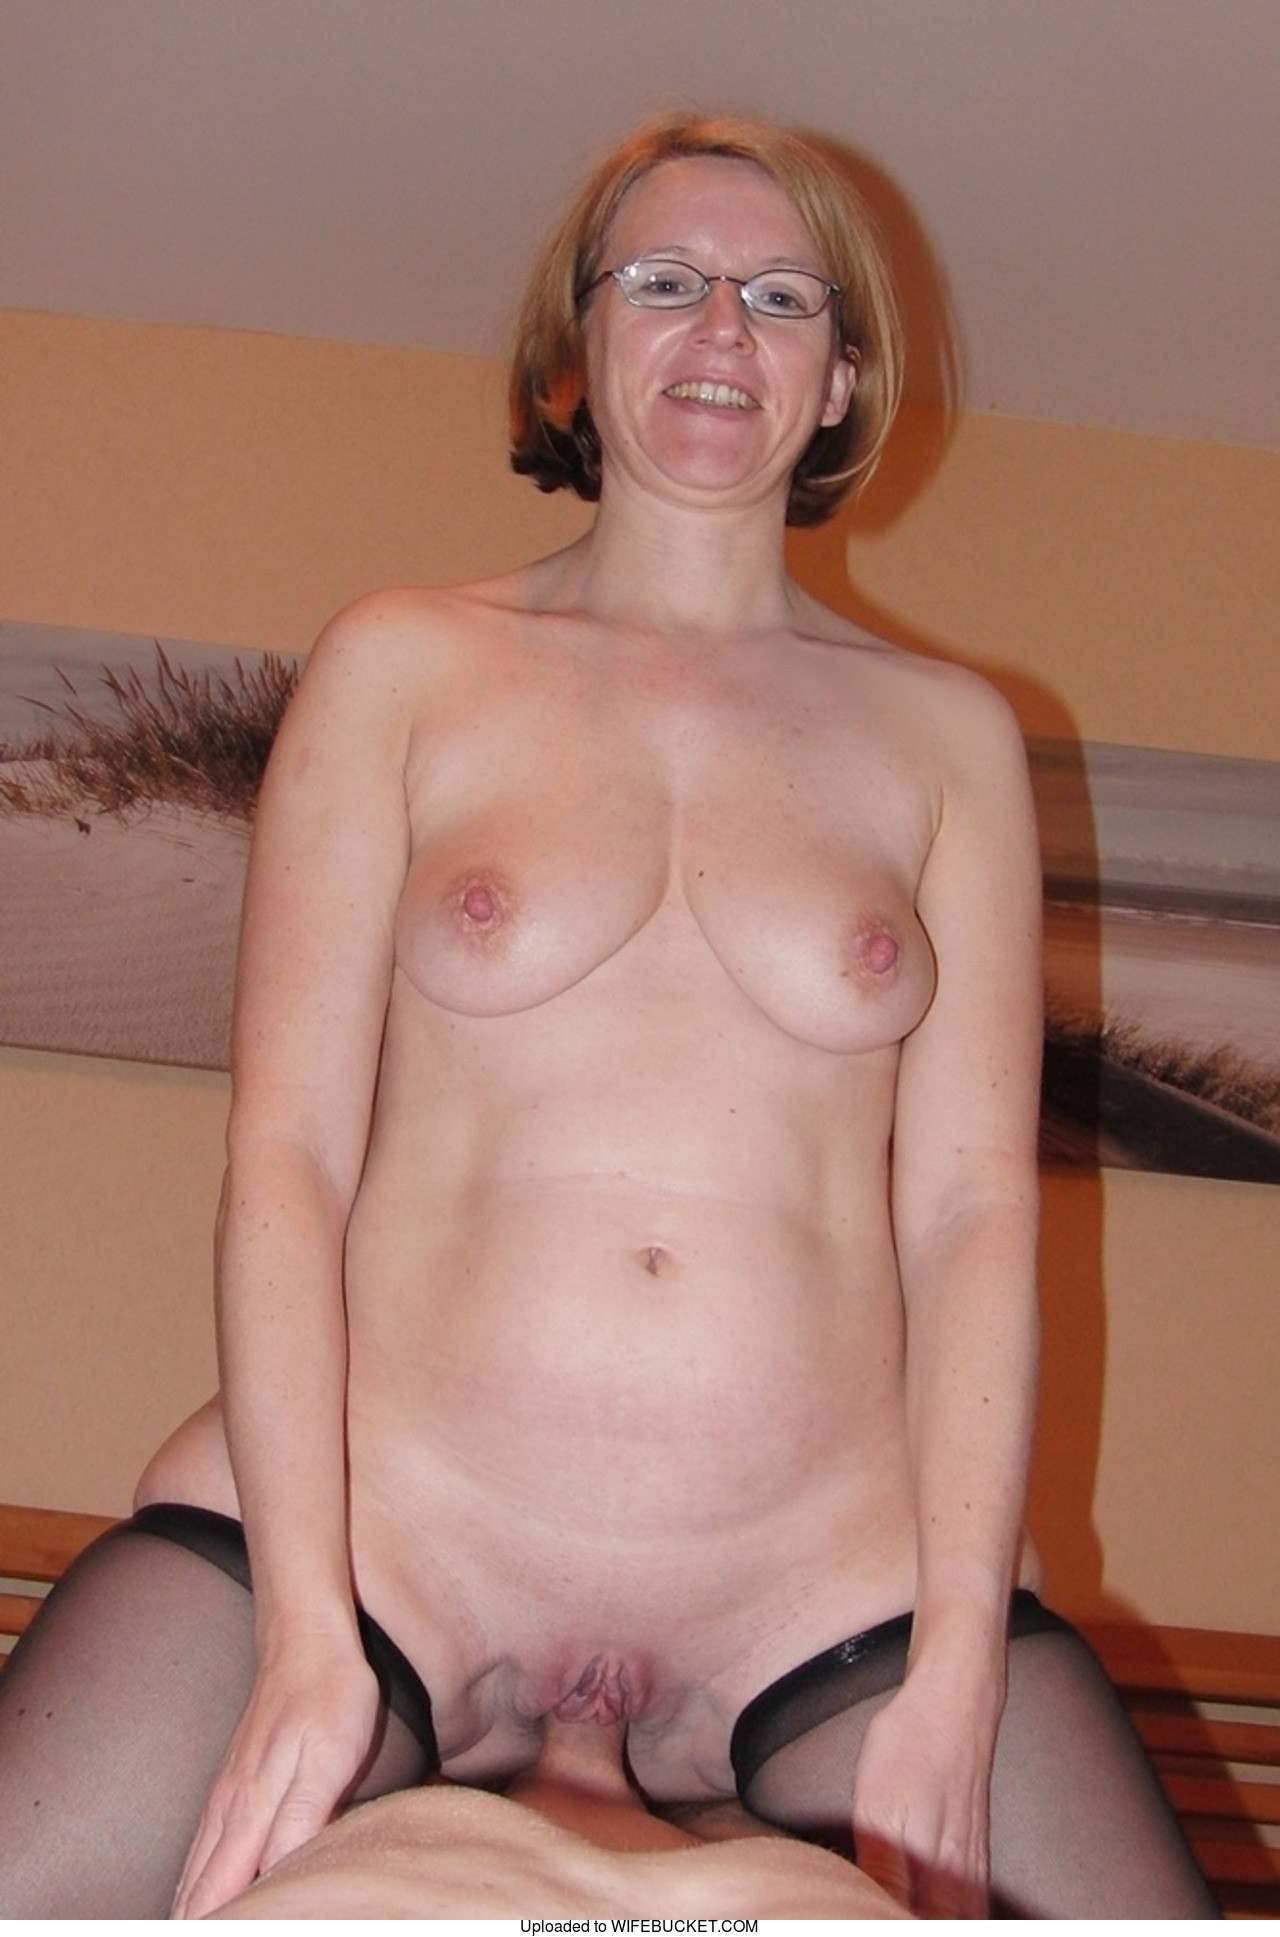 Amateur Home Porn 38 home porn pictures featuring only real amateur wives and